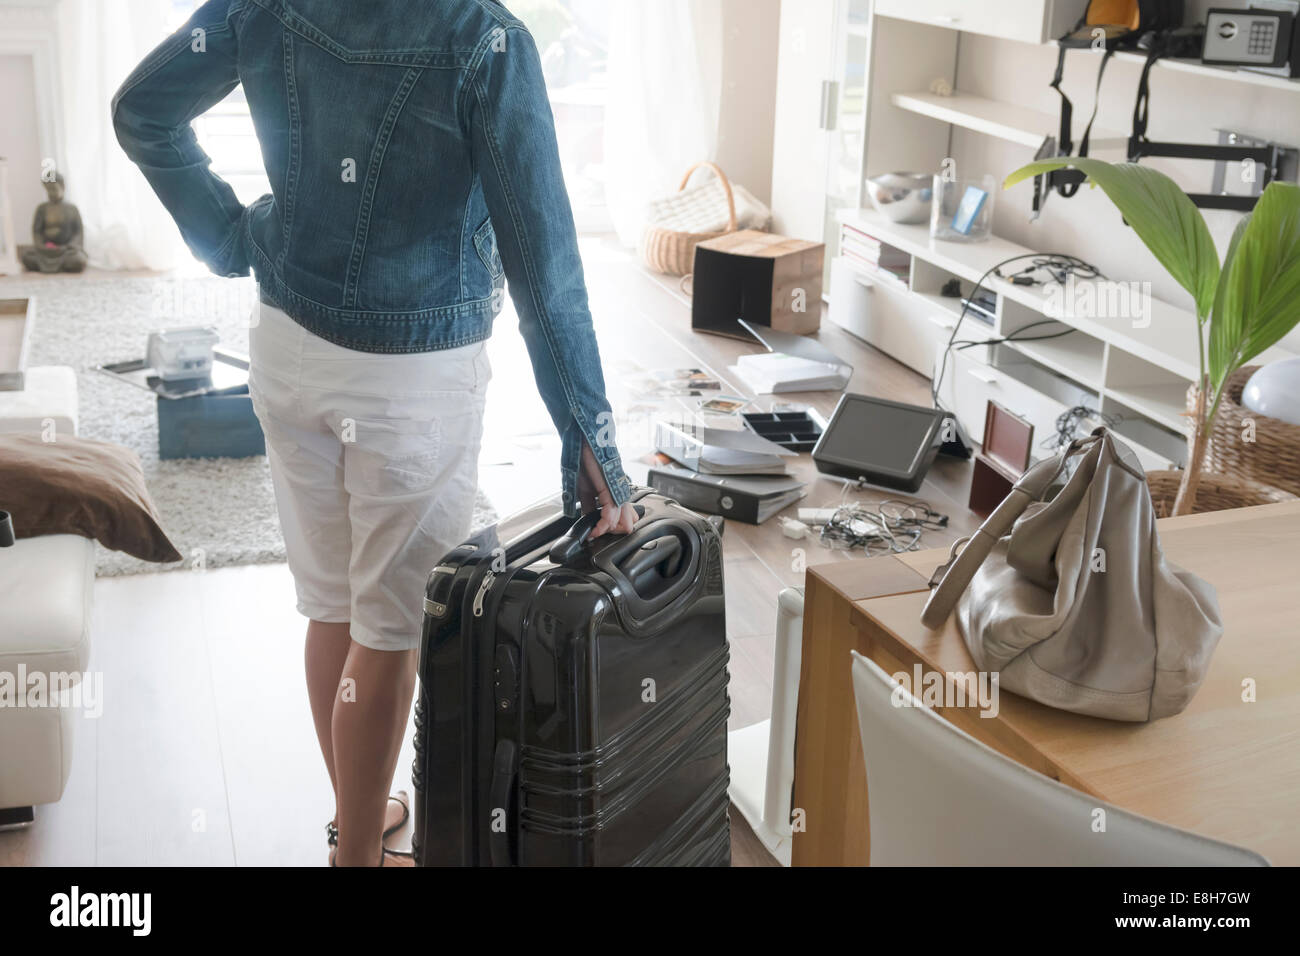 Female holidaymaker watching chaos after burglary after comeback in her one-family house - Stock Image